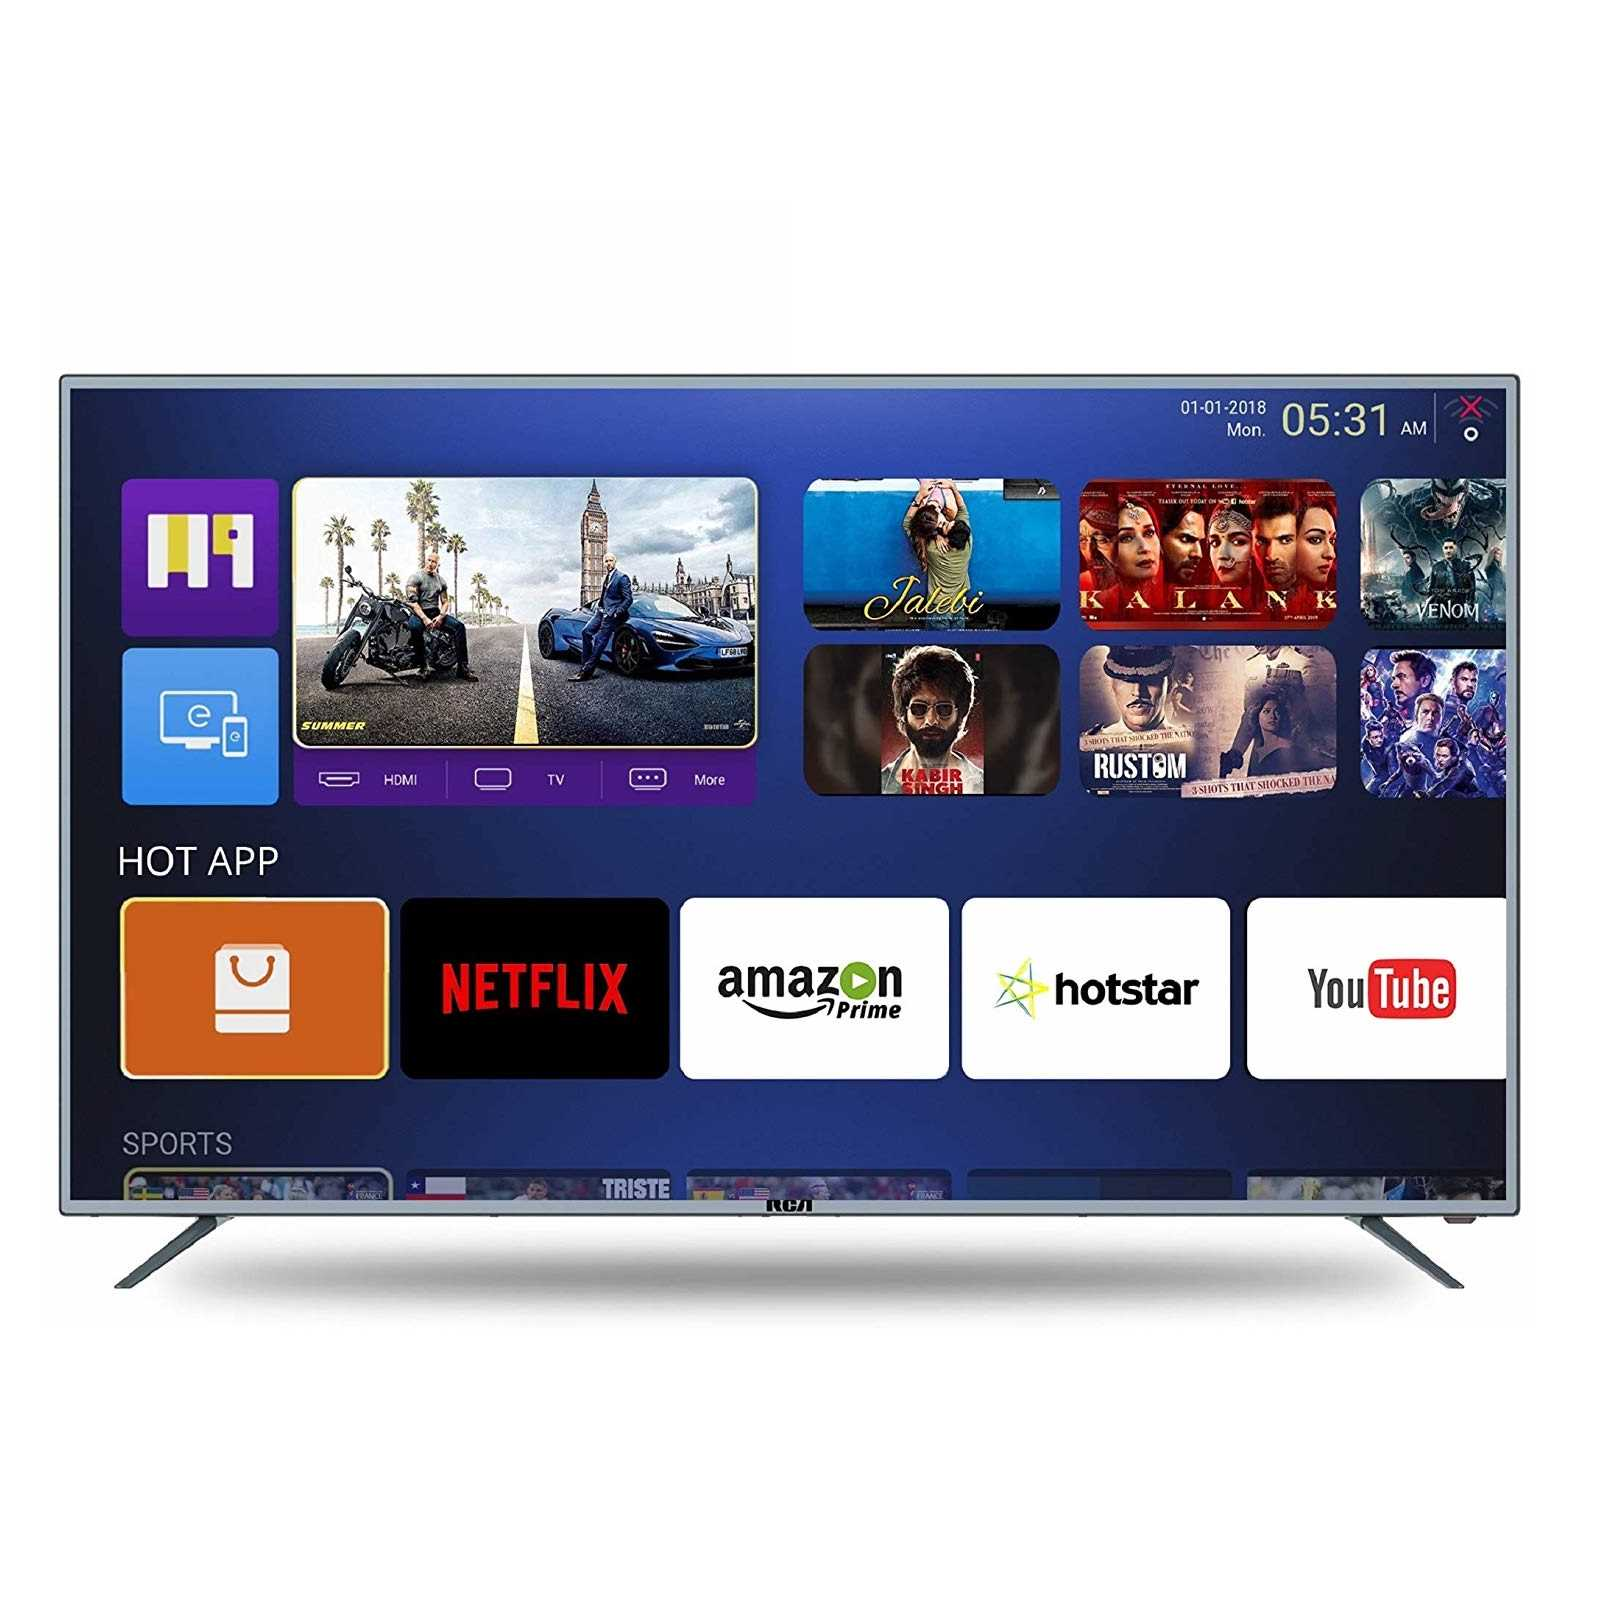 RCA 49WR1904U 49 Inch 4K Ultra HD Smart LED Television